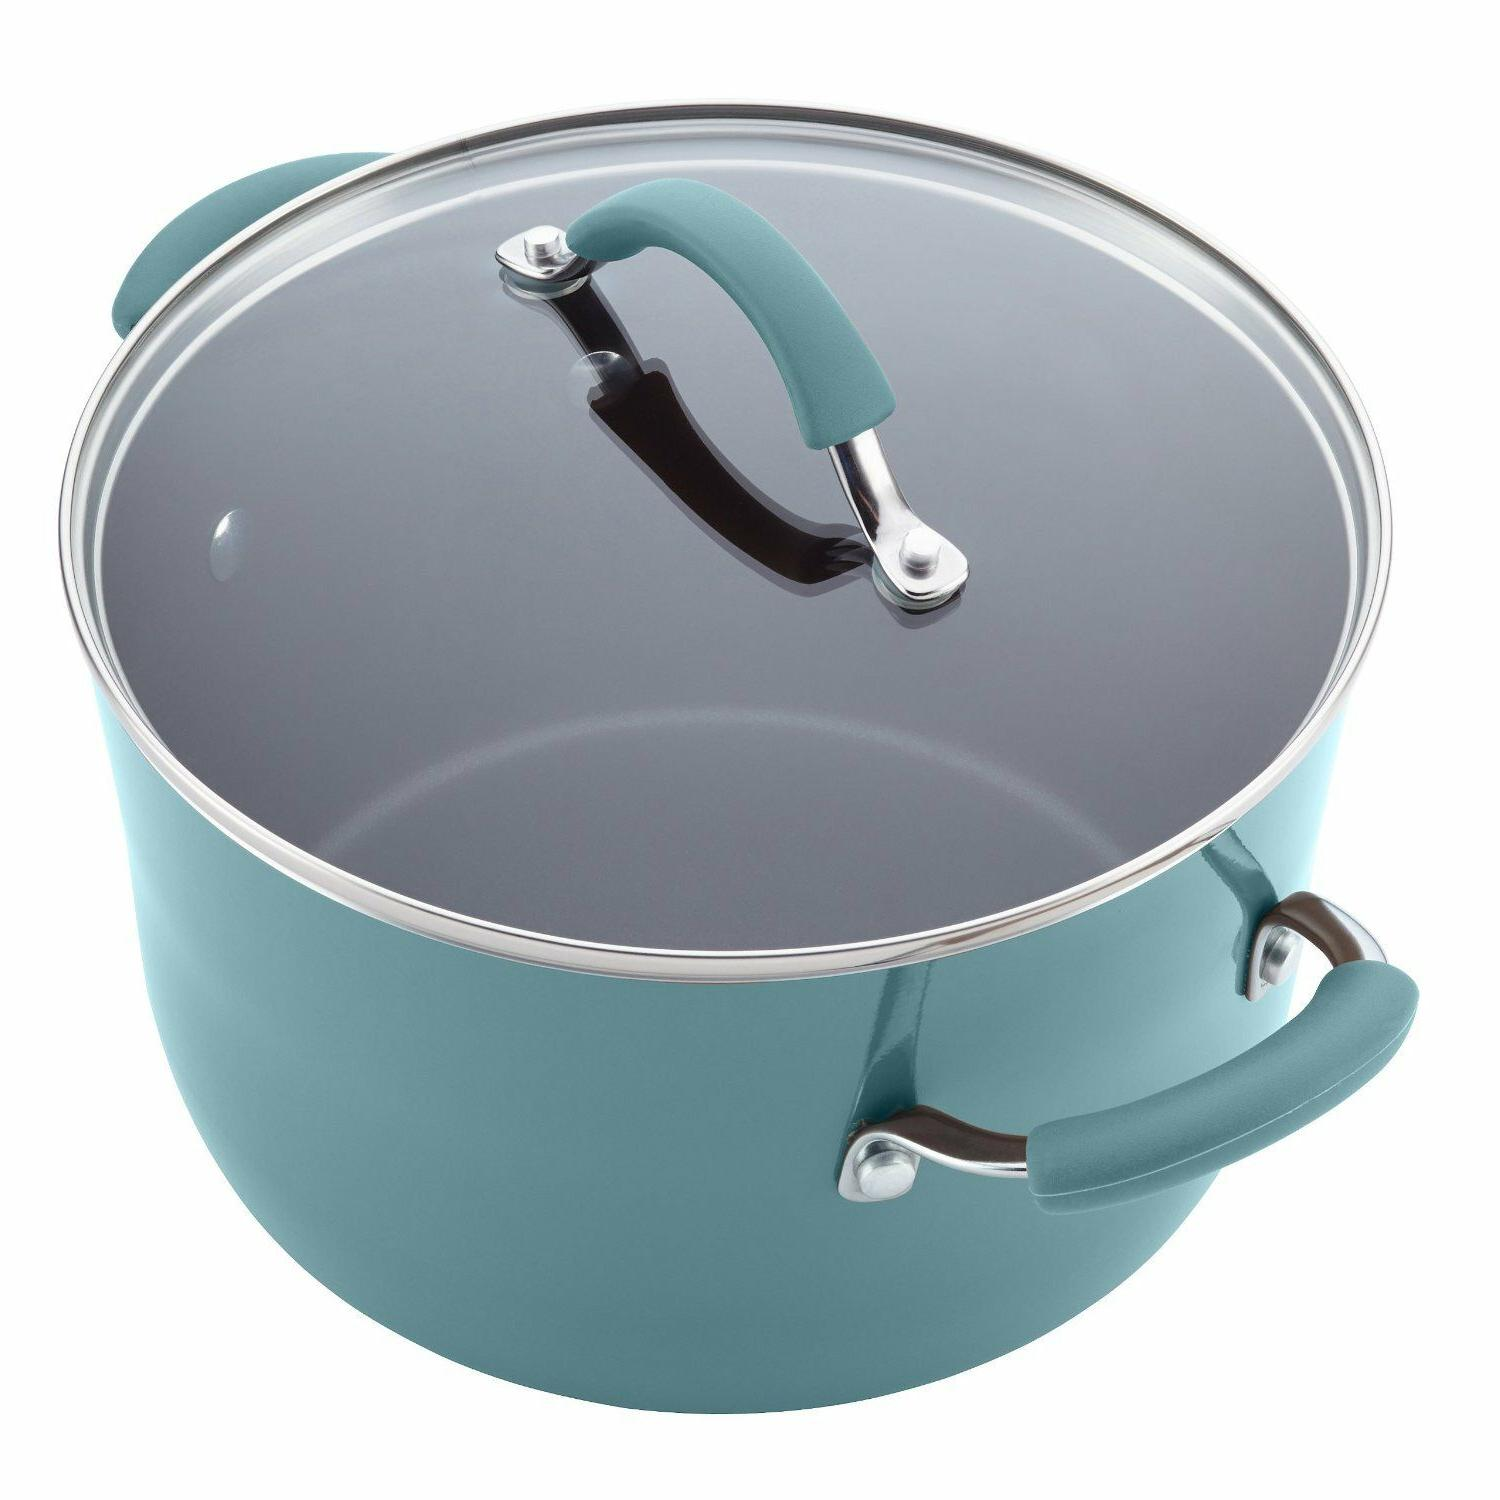 12pc Rachel Set Pans Lids Teal Non Stick